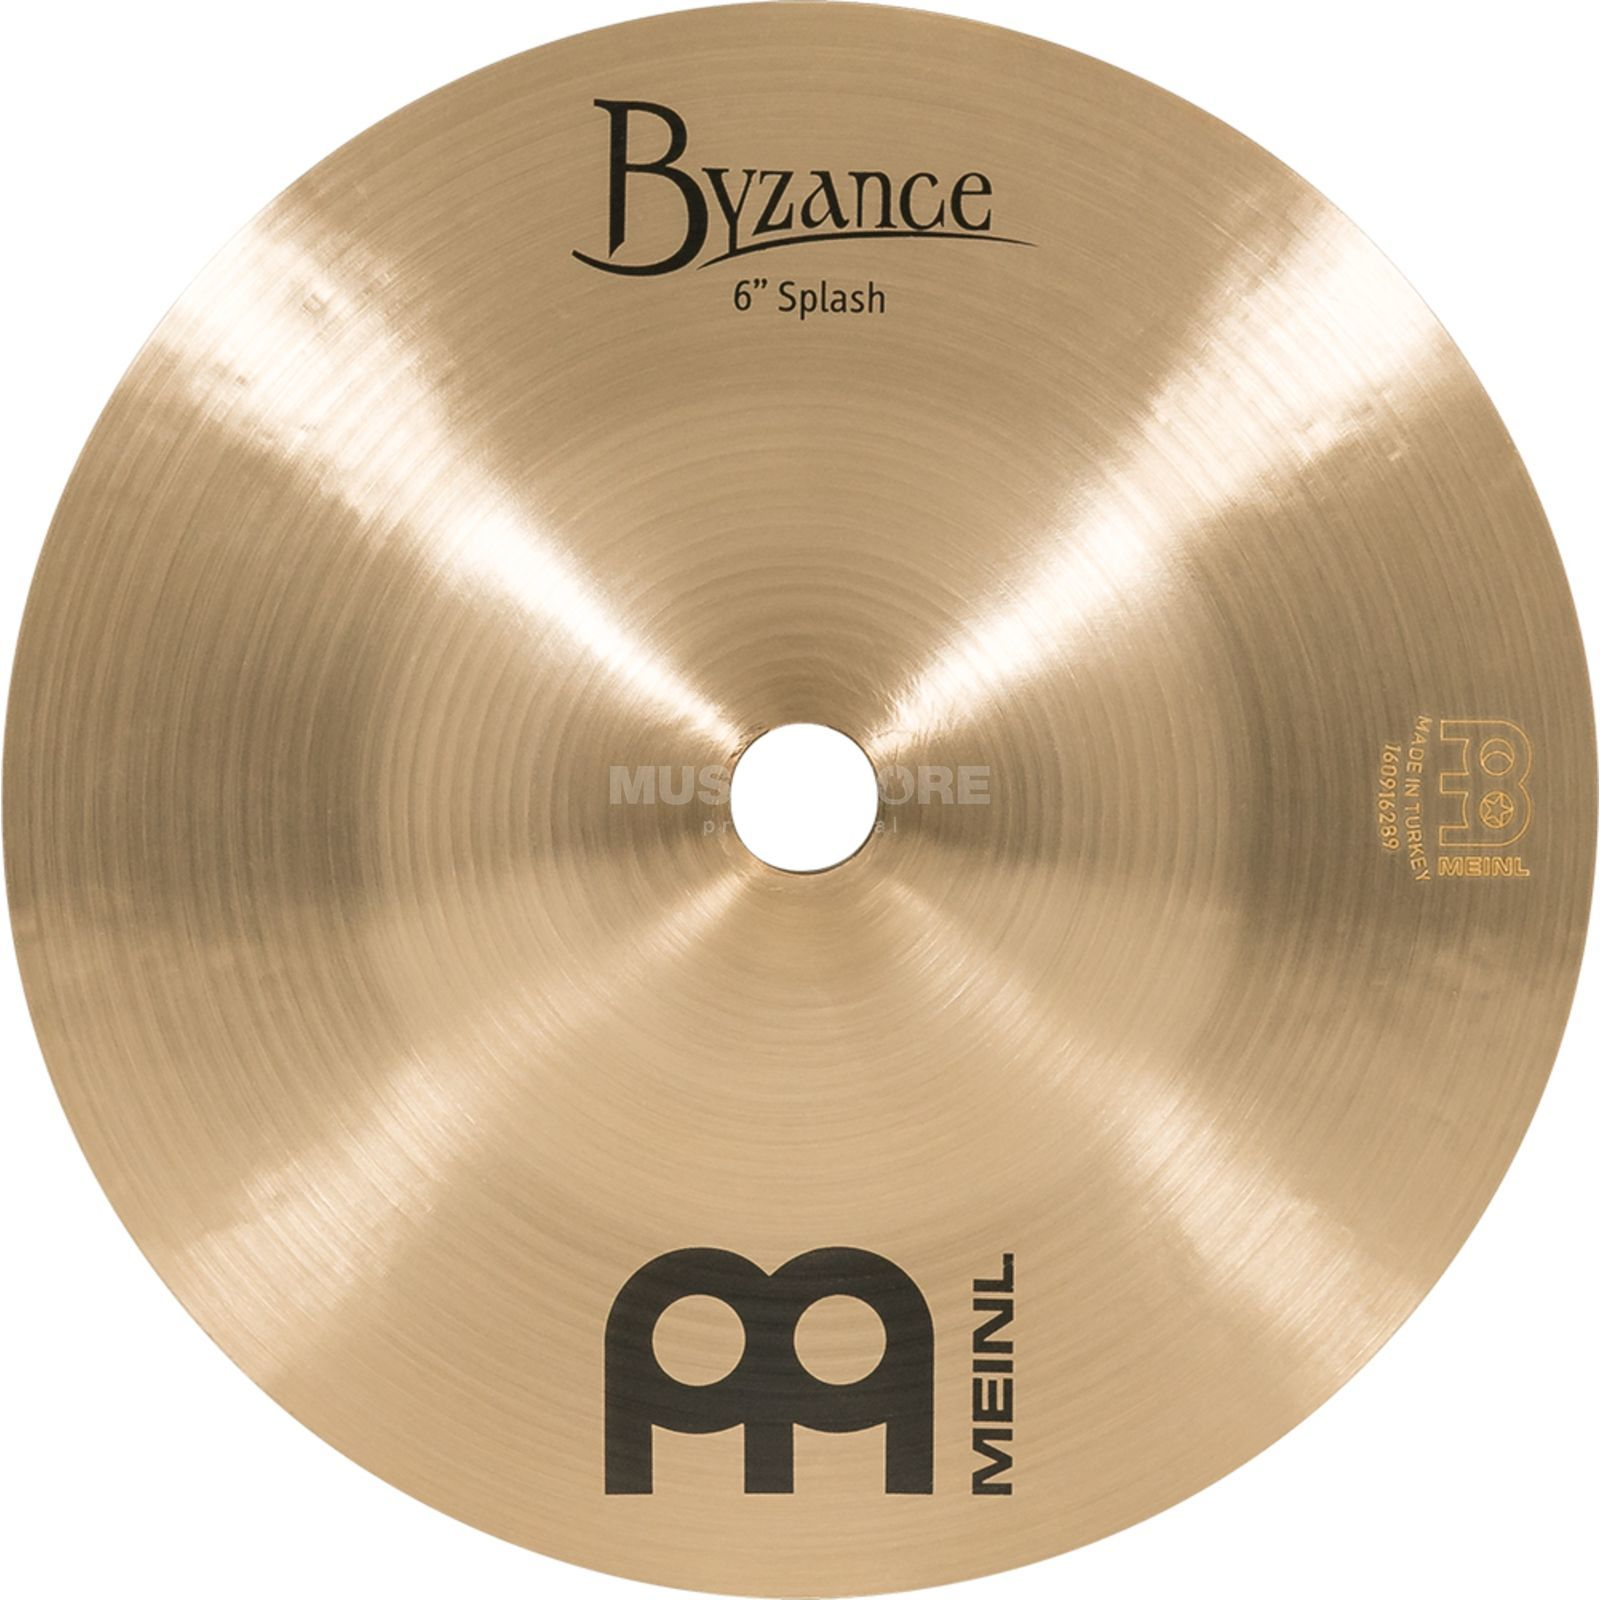 "Meinl Byzance Splash 6"" B6S, Traditional Finish Produktbild"